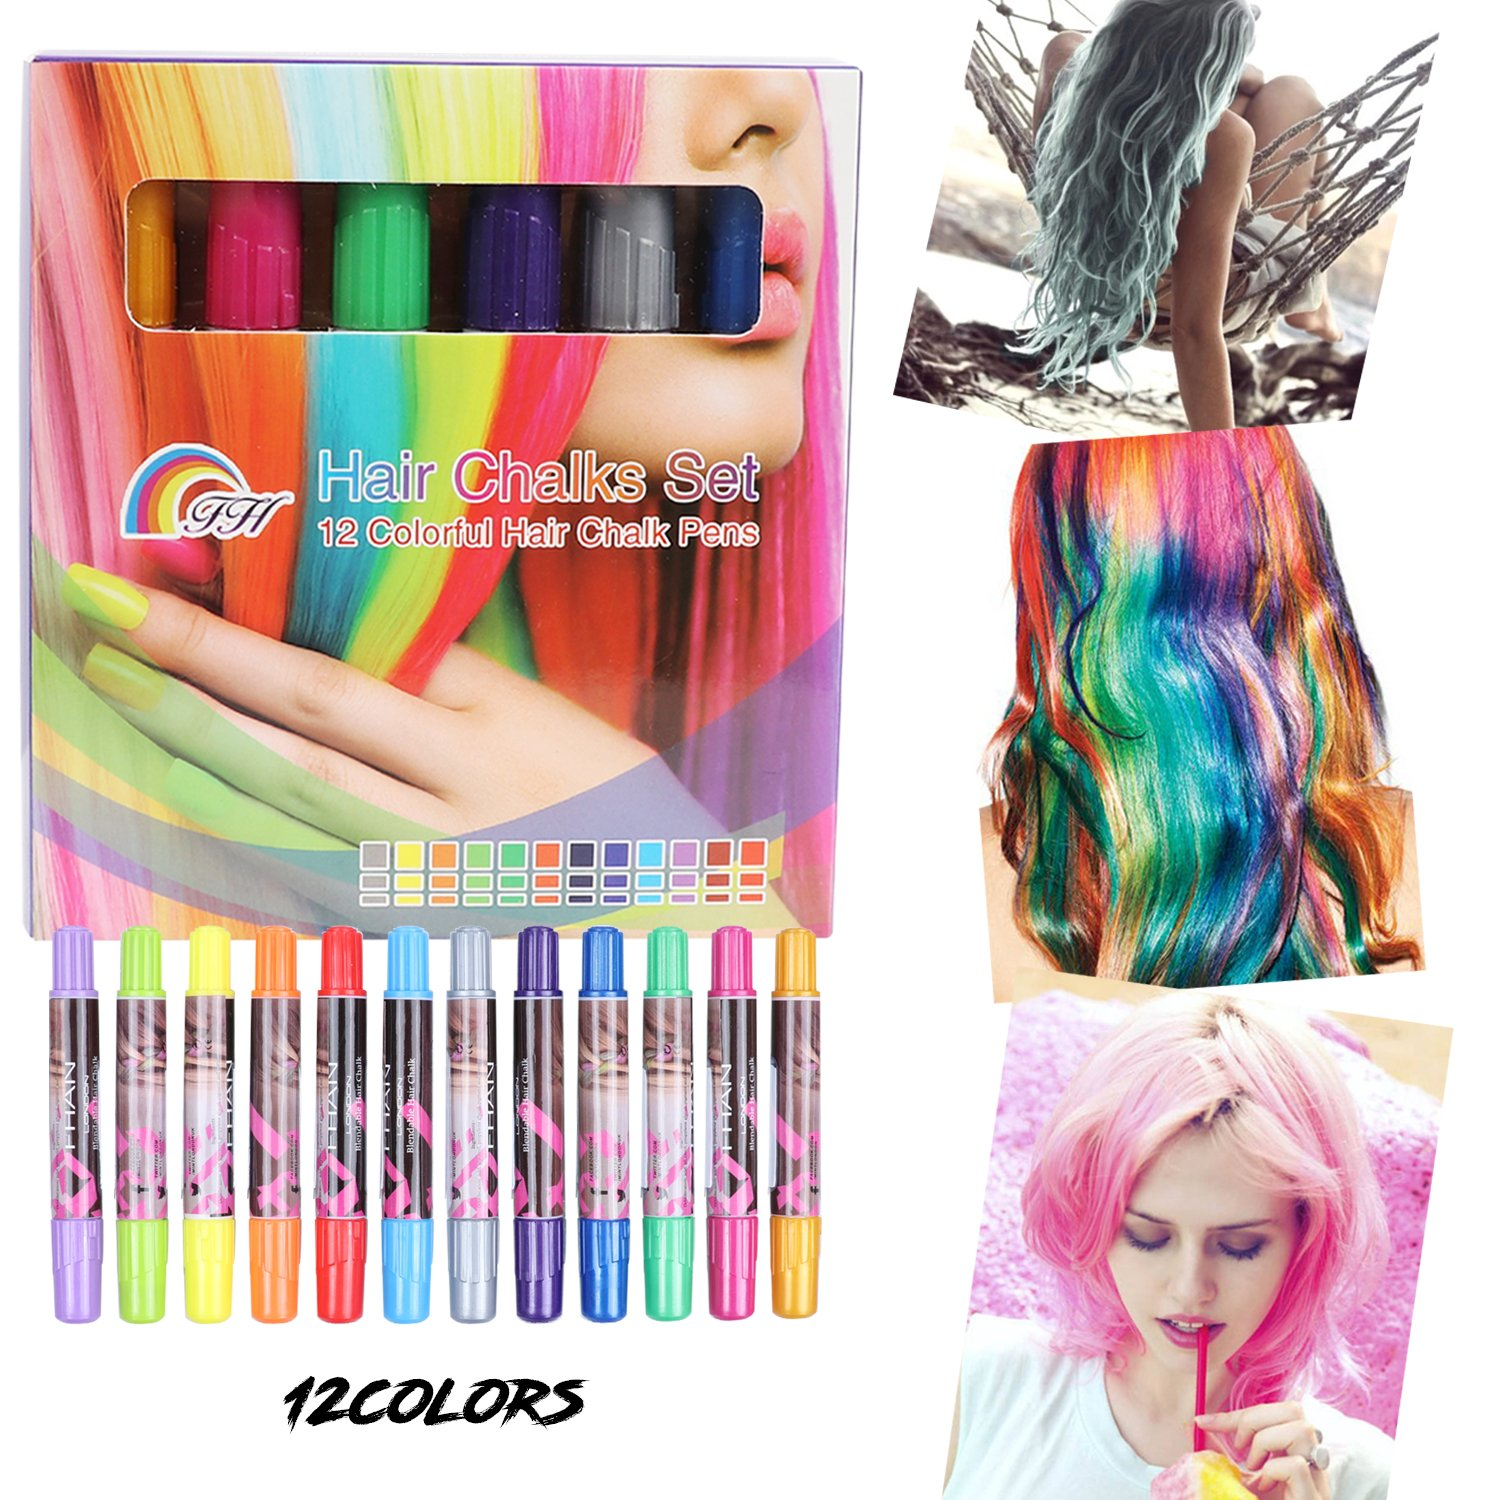 Temporary Bright Hair Chalk Set - XIAO MO GU 12 Colorful Hair Chalk Pens for All Hair Colors- Non-Toxic Portable Hair Coloring Chalk for Girls, Great Christmas Birthday Gifts Present for Girls